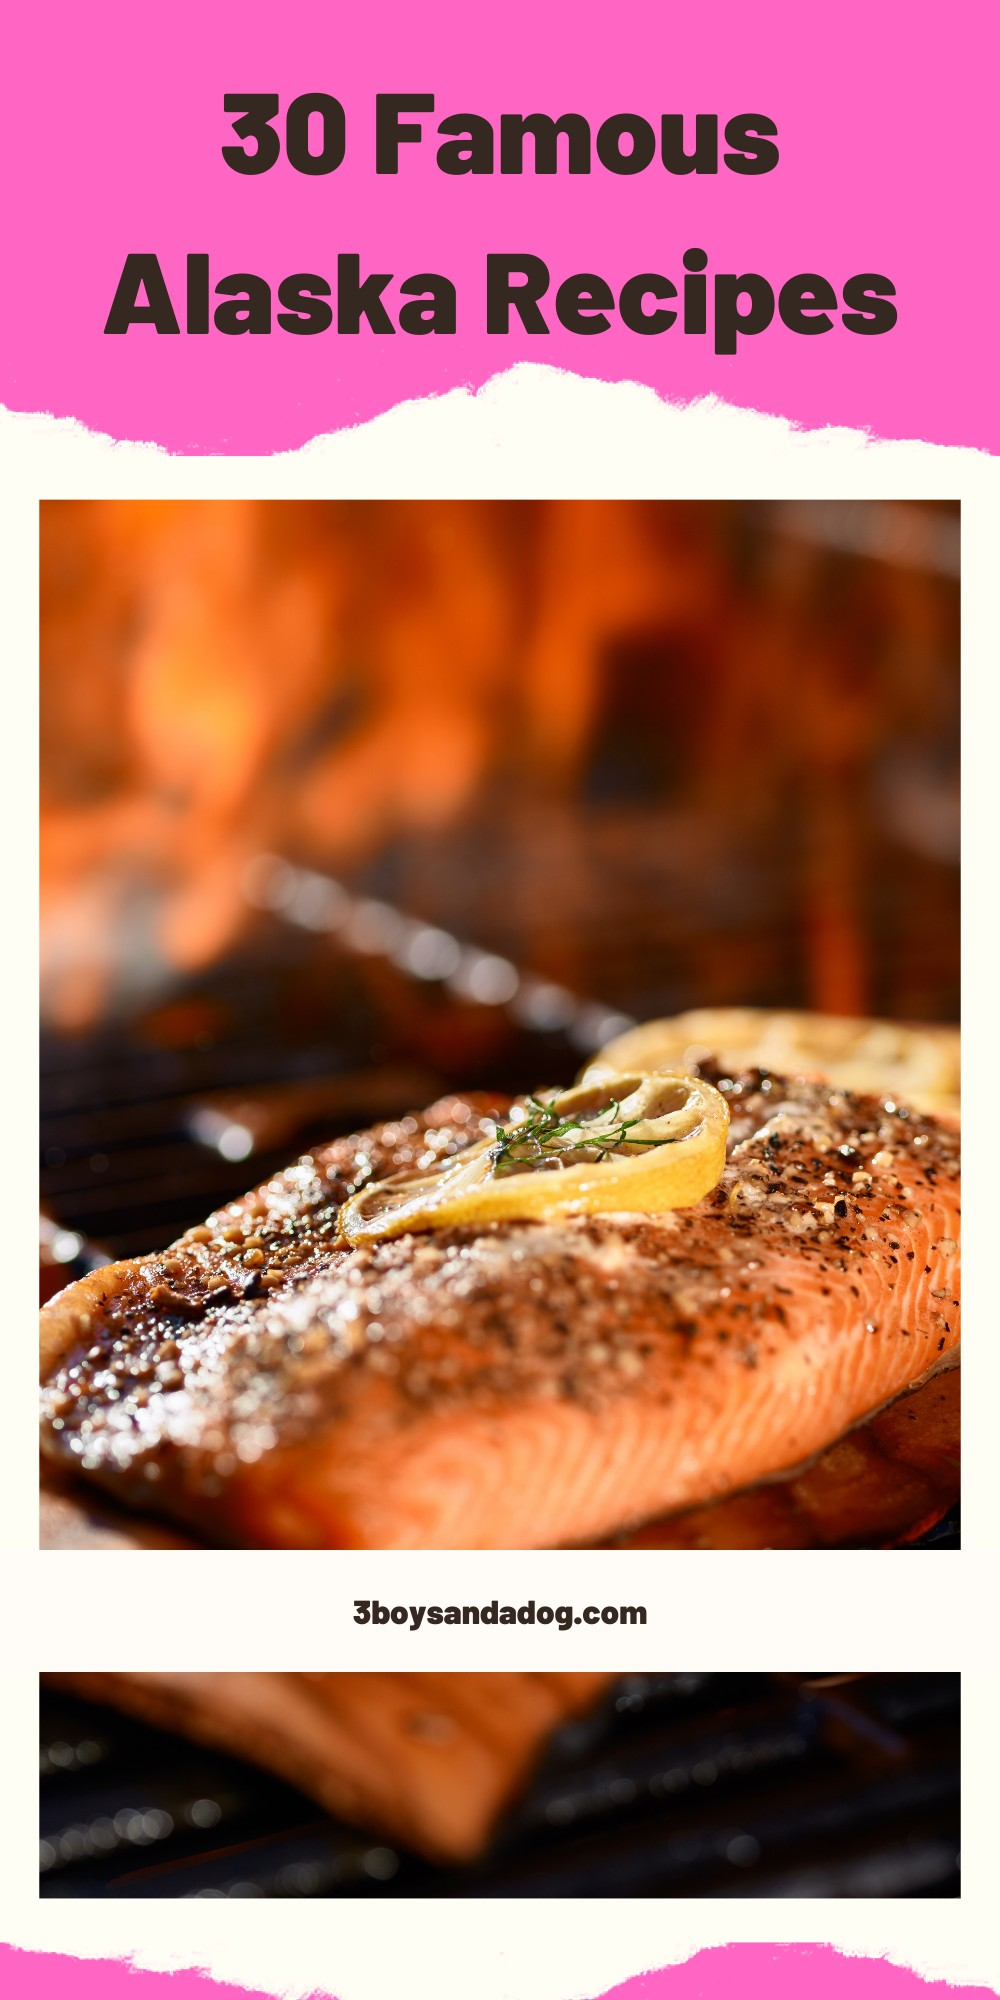 """Pin image """"30 Famous Alaska Recipes"""" with a photo of smoked salmon on a plate"""